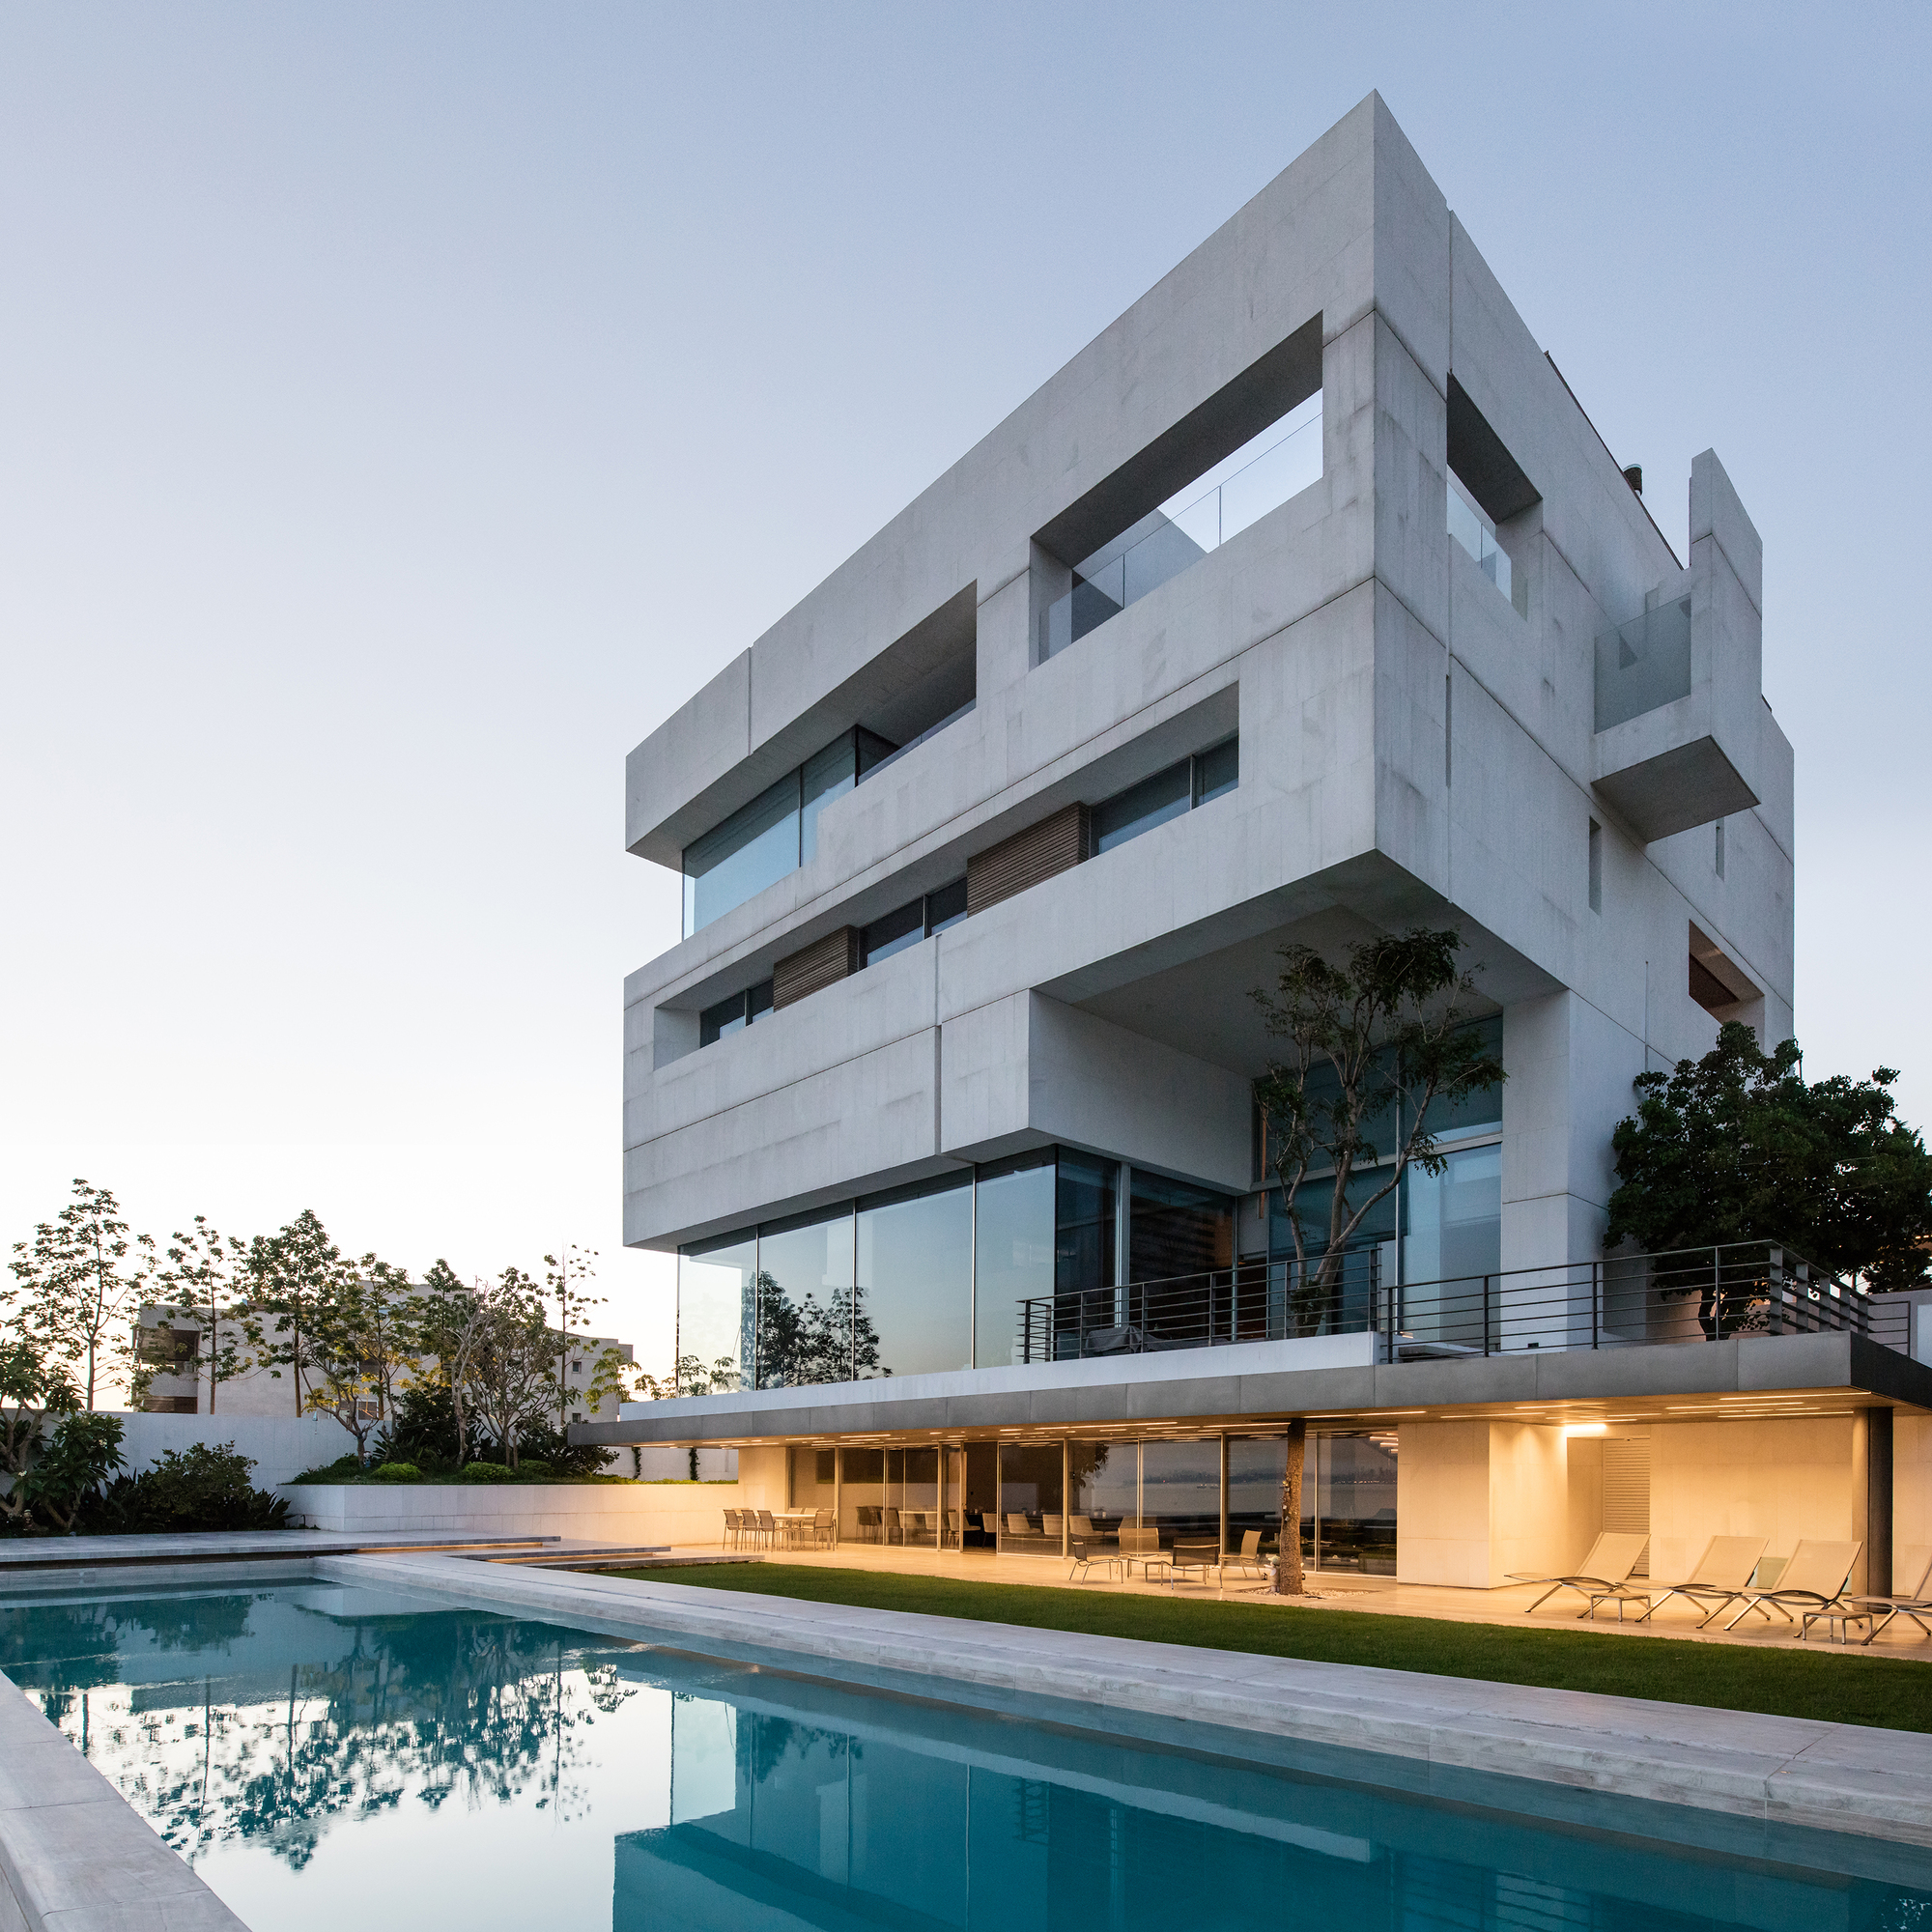 Architecture House And: AZ House / Nabil Gholam Architects